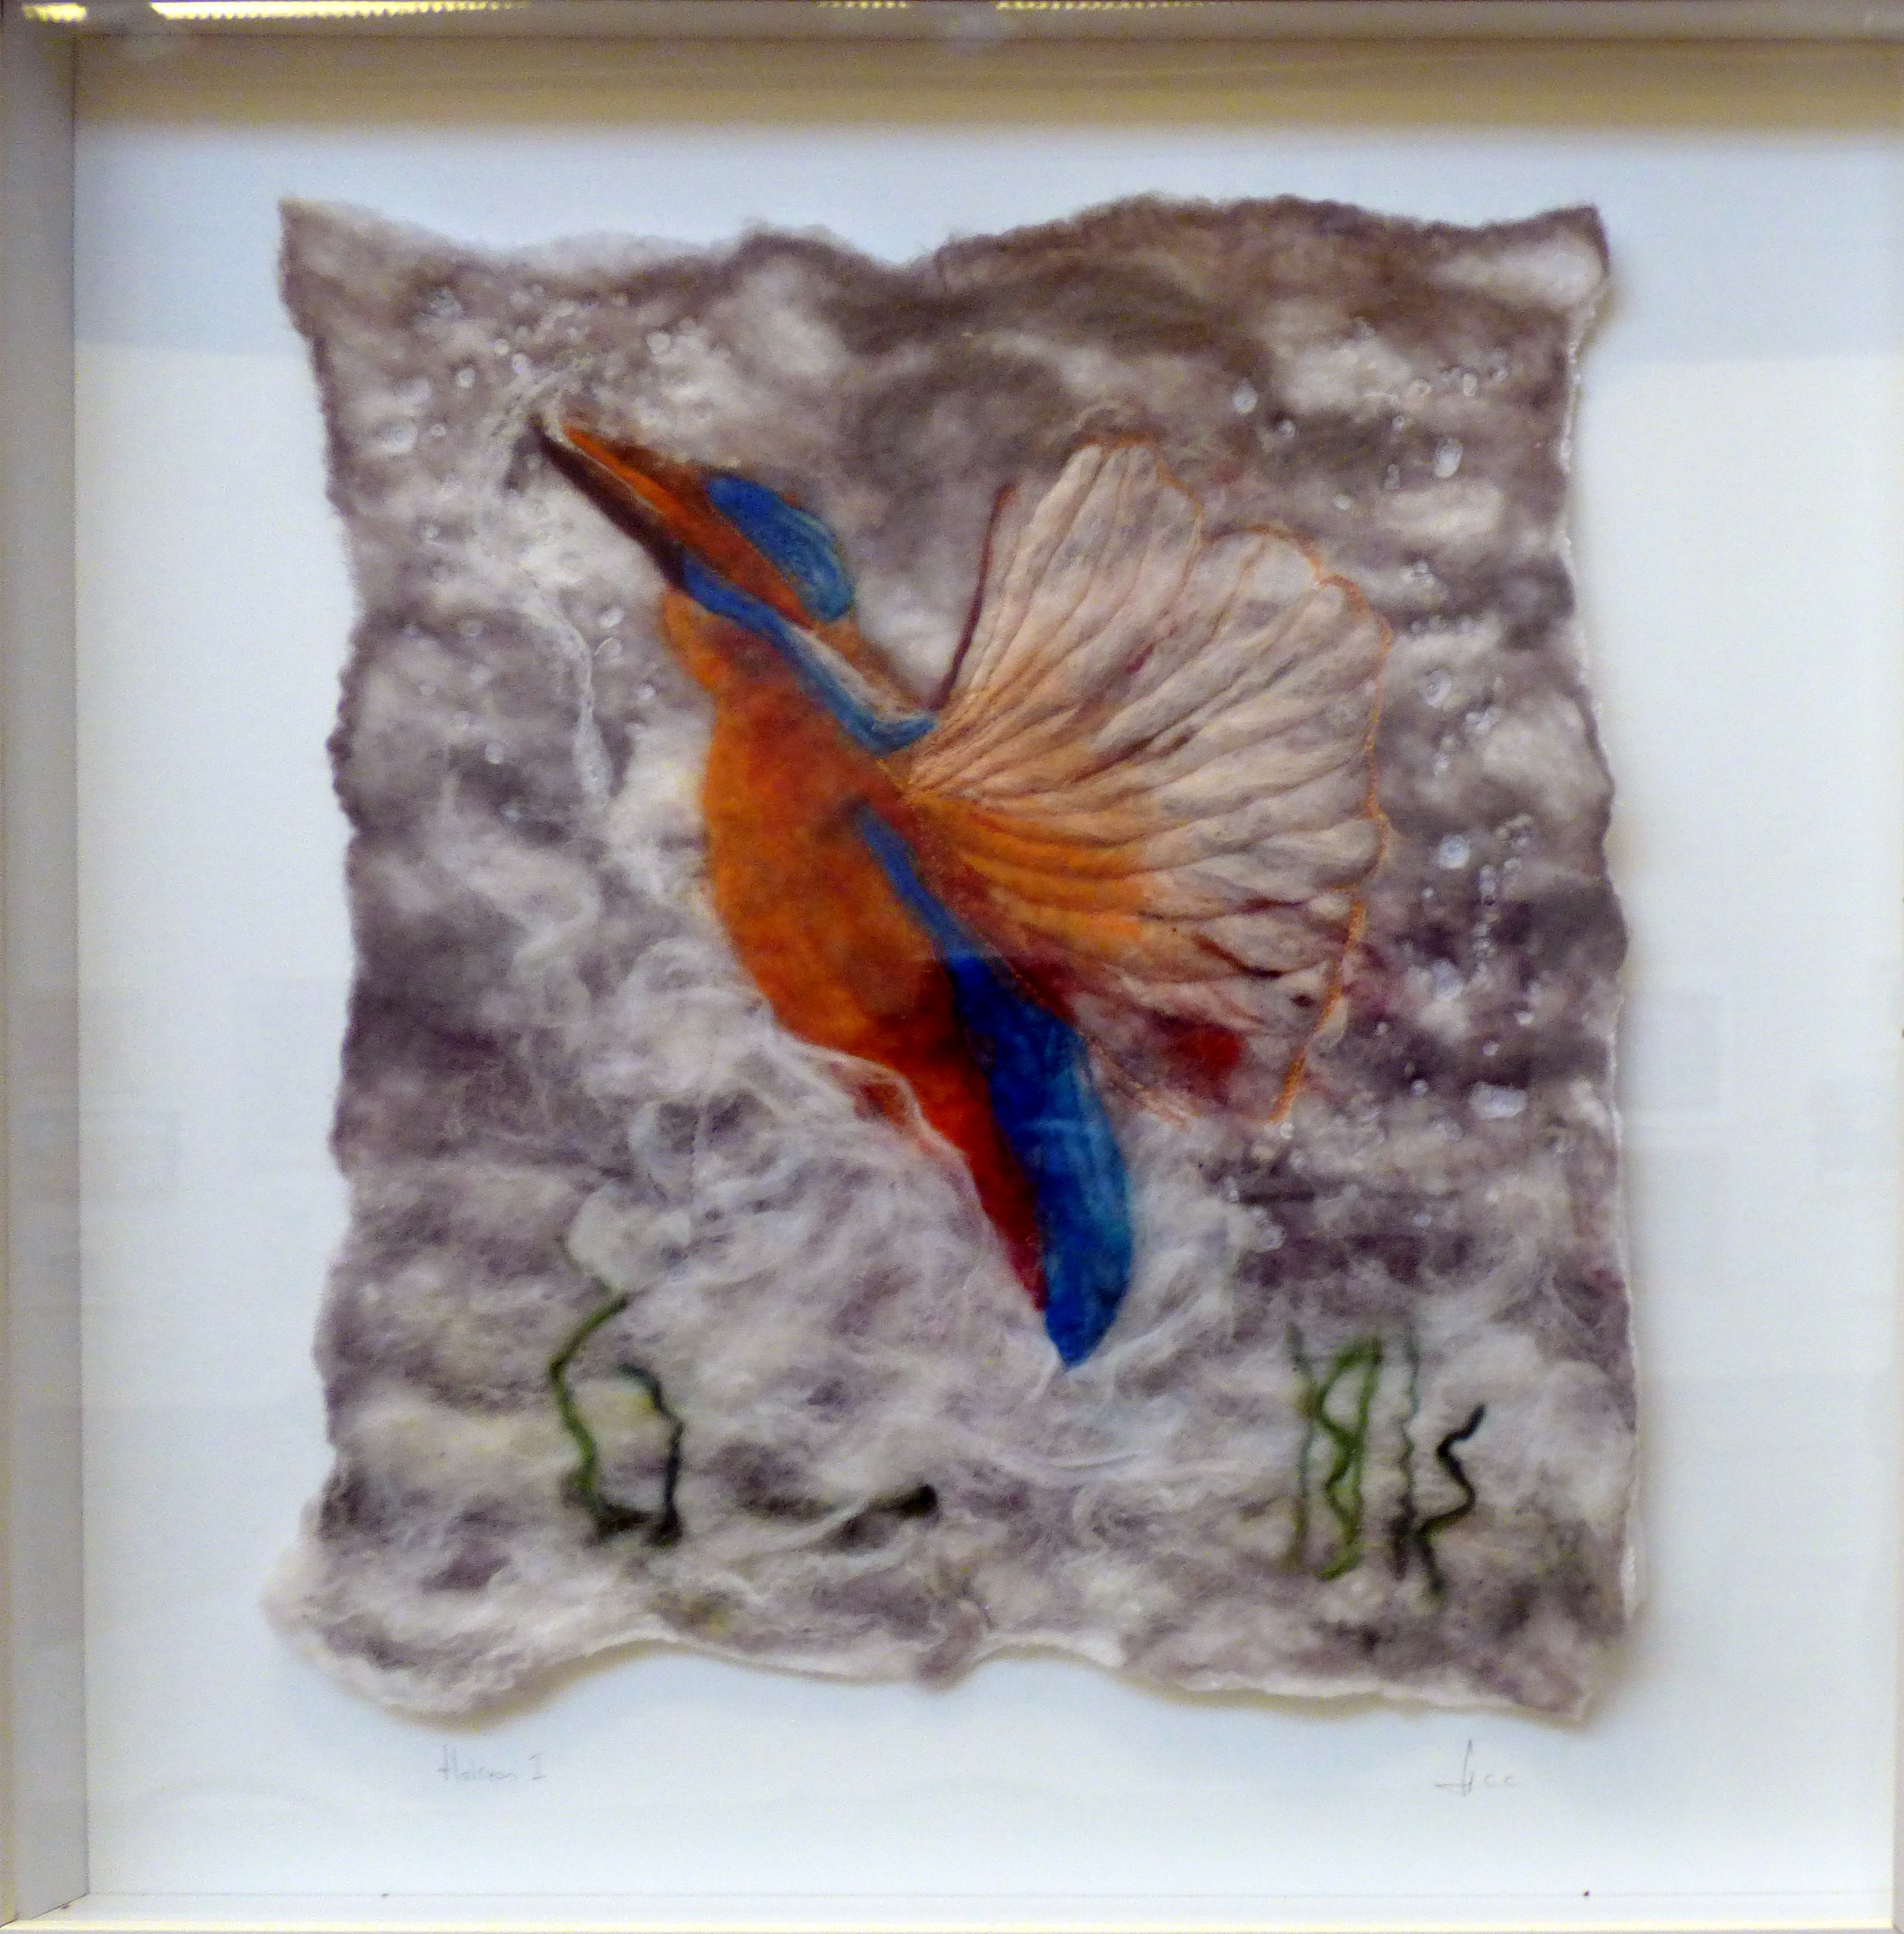 HALCYON 1 by Helen Cooper, wet felting, machine and hand stitching